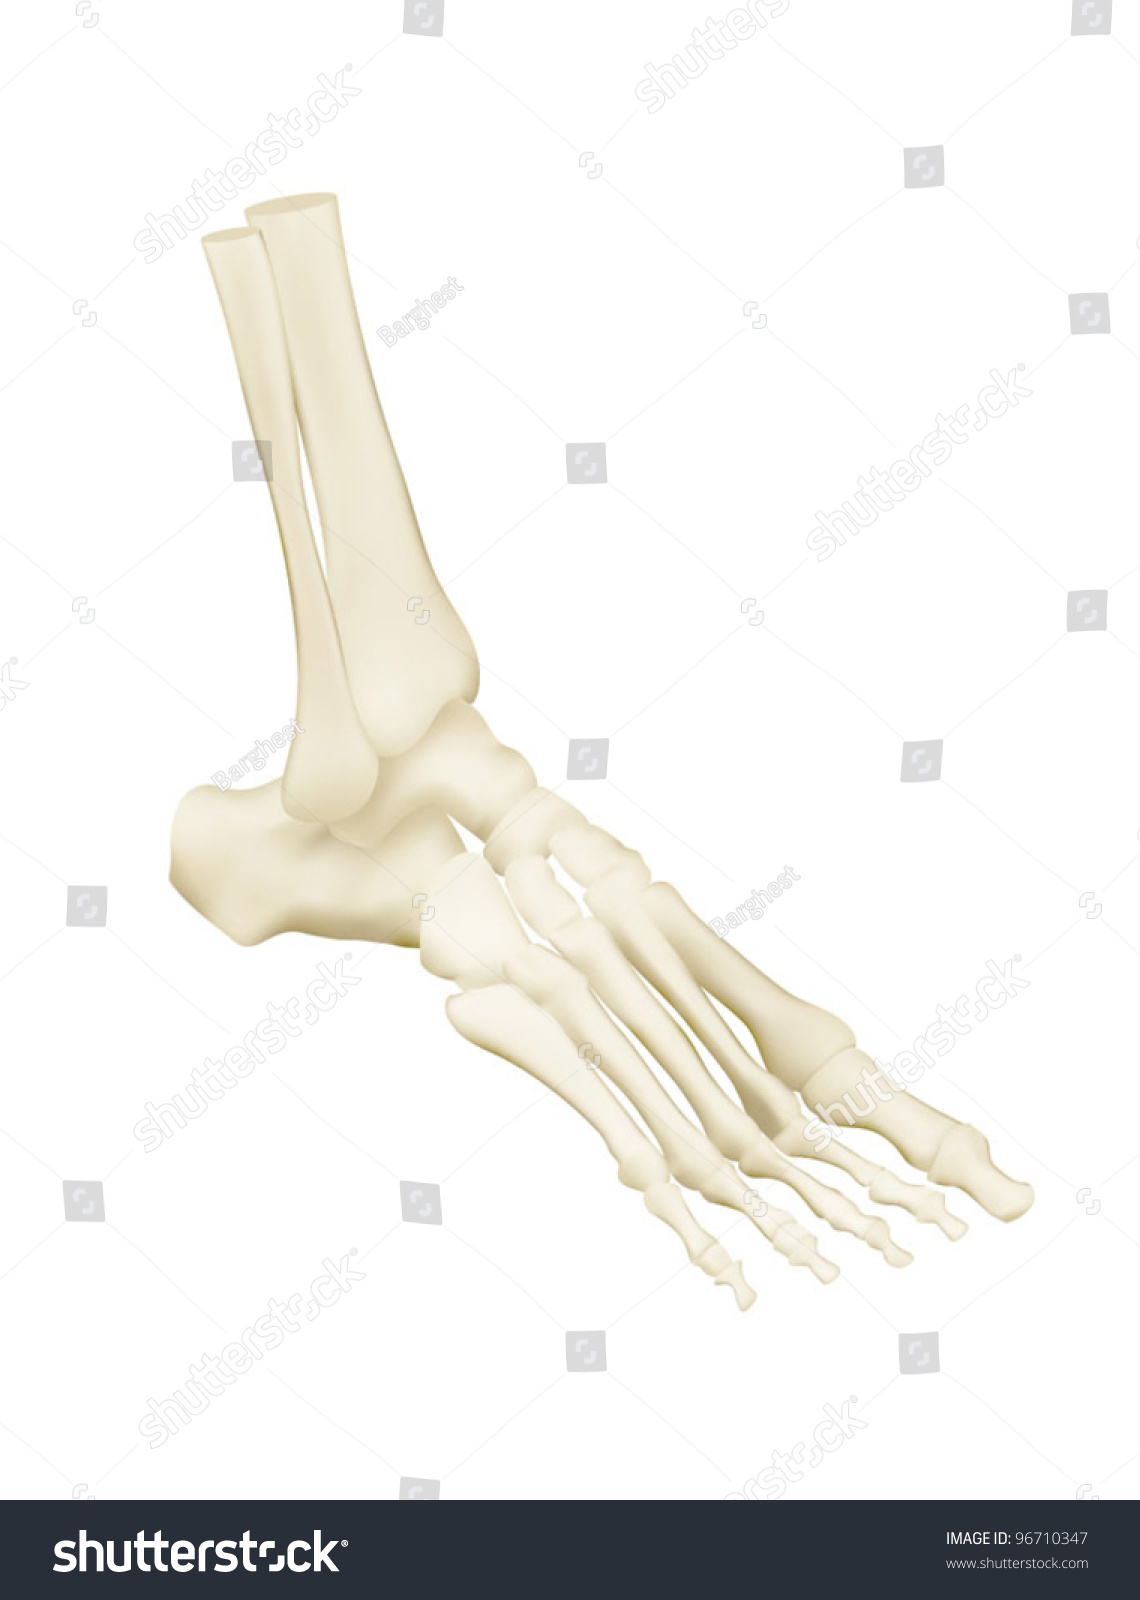 Human Foot Bones Anatomy Stock Vector 96710347 - Shutterstock